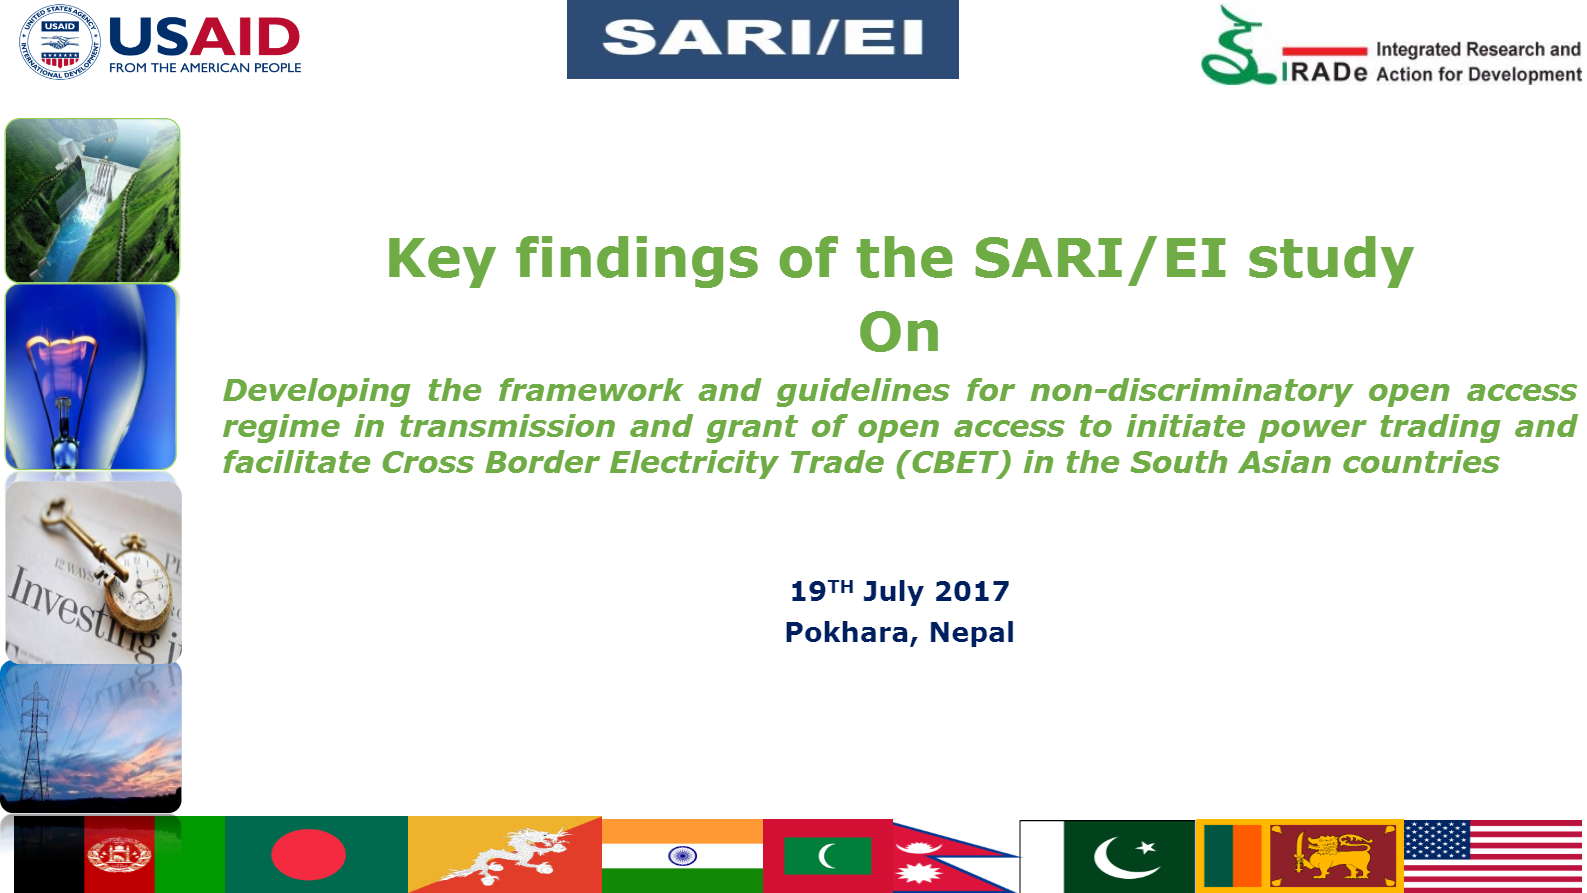 Developing-the-framework-and-guidelines-for-non-discriminatory-open-access-regime-in-transmission-to-facilitate-CBET-Delloite-Rajiv-SARI-EI-IRADE-19th-July2017